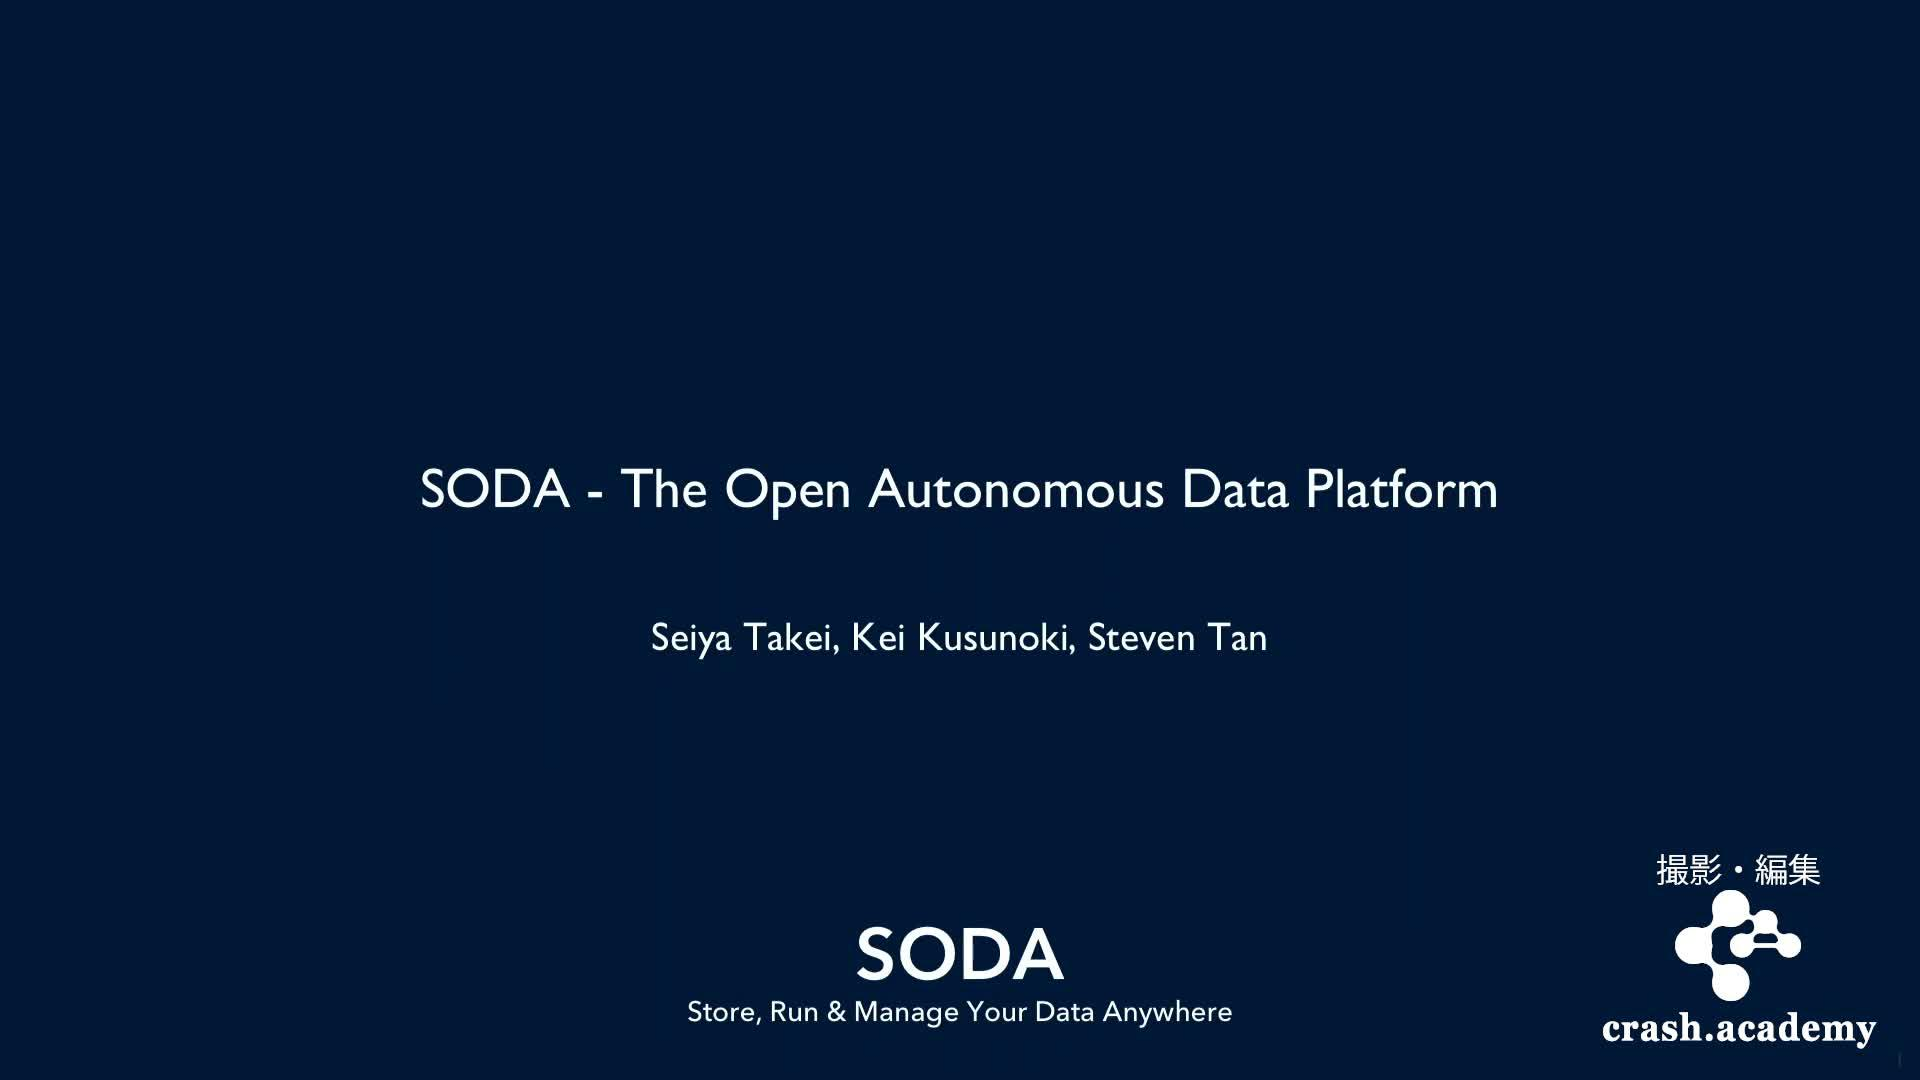 SODA - The Open Autonomous Data Platform For Cloud Native